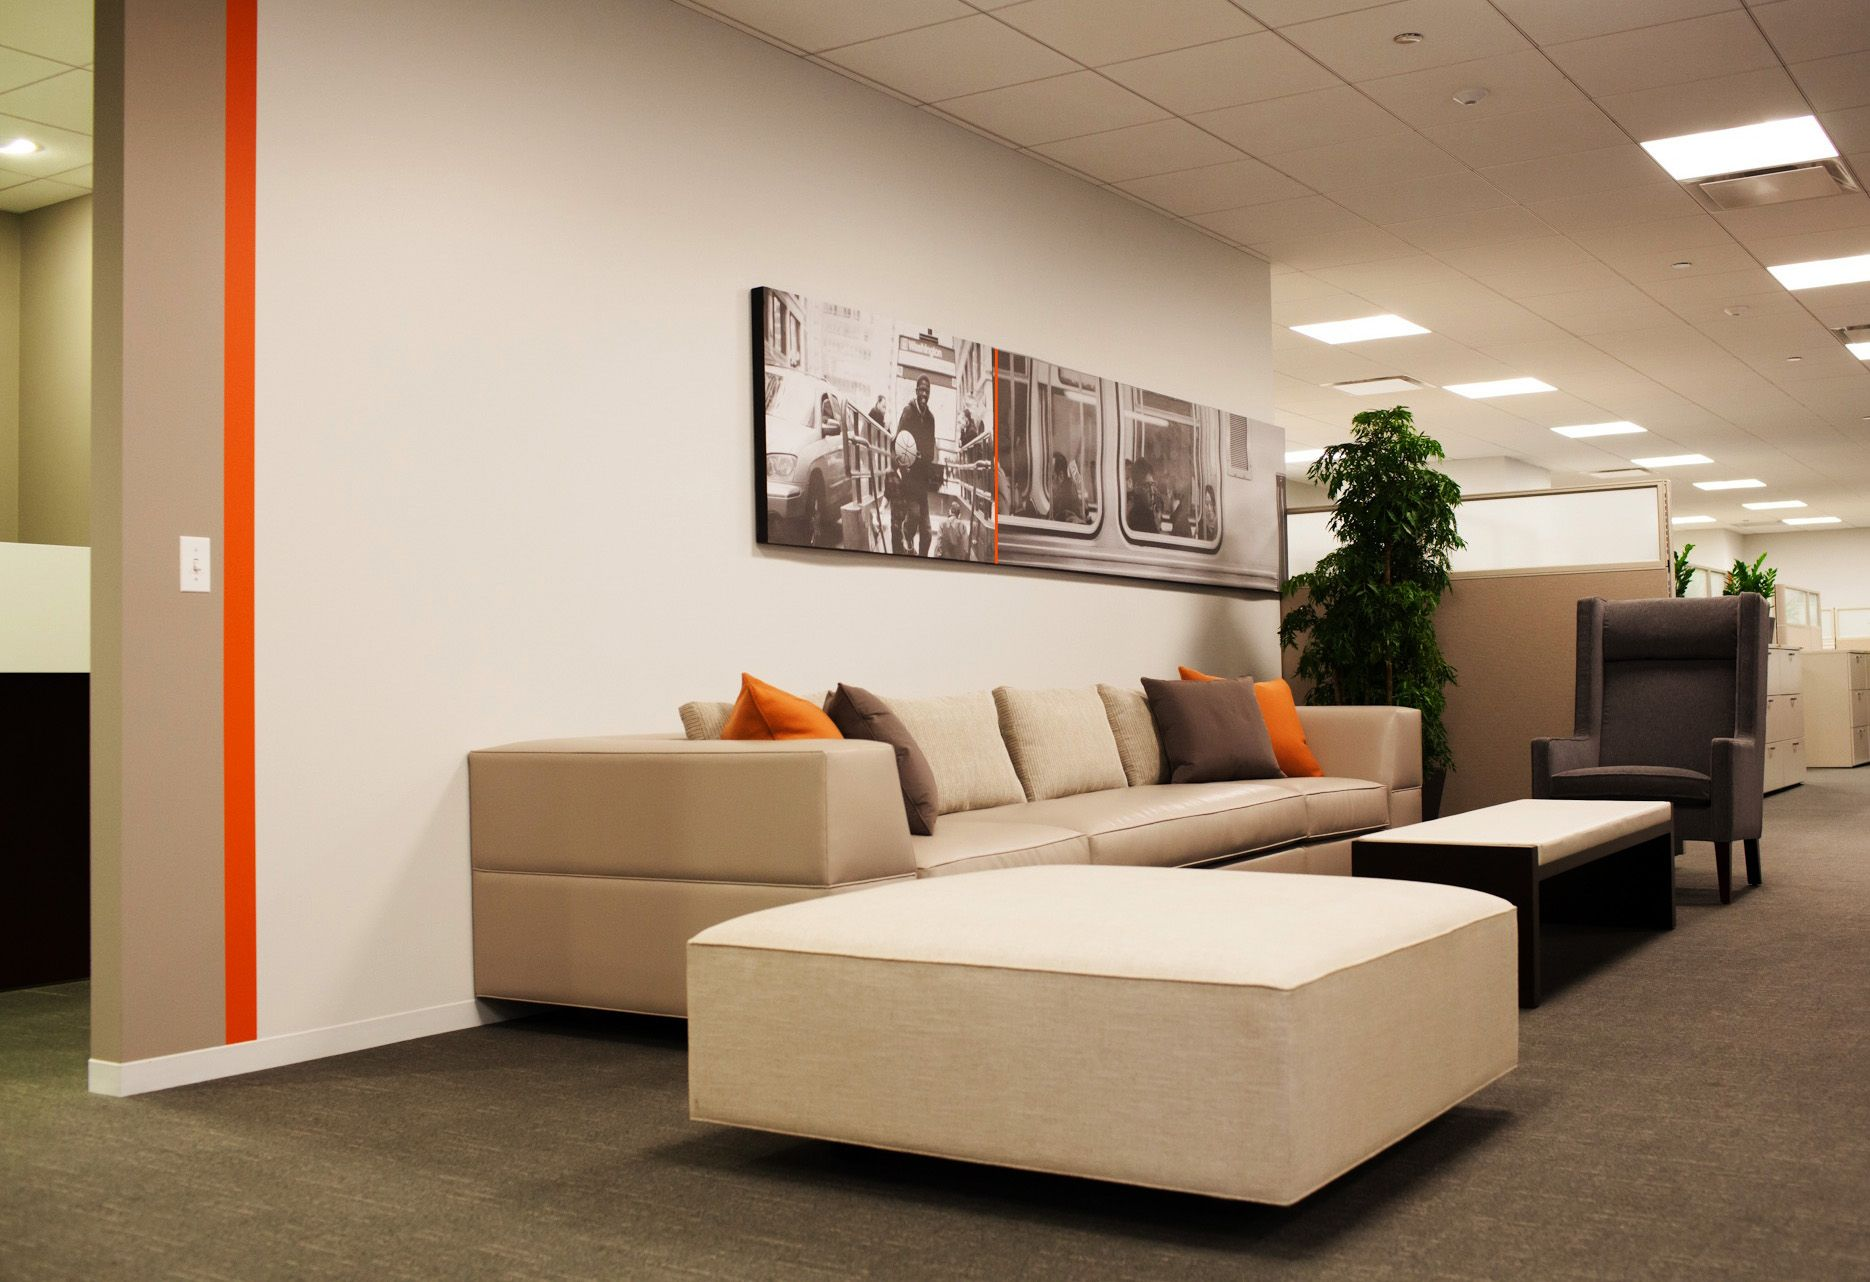 Aspen insurance chicago office by m2 creative management